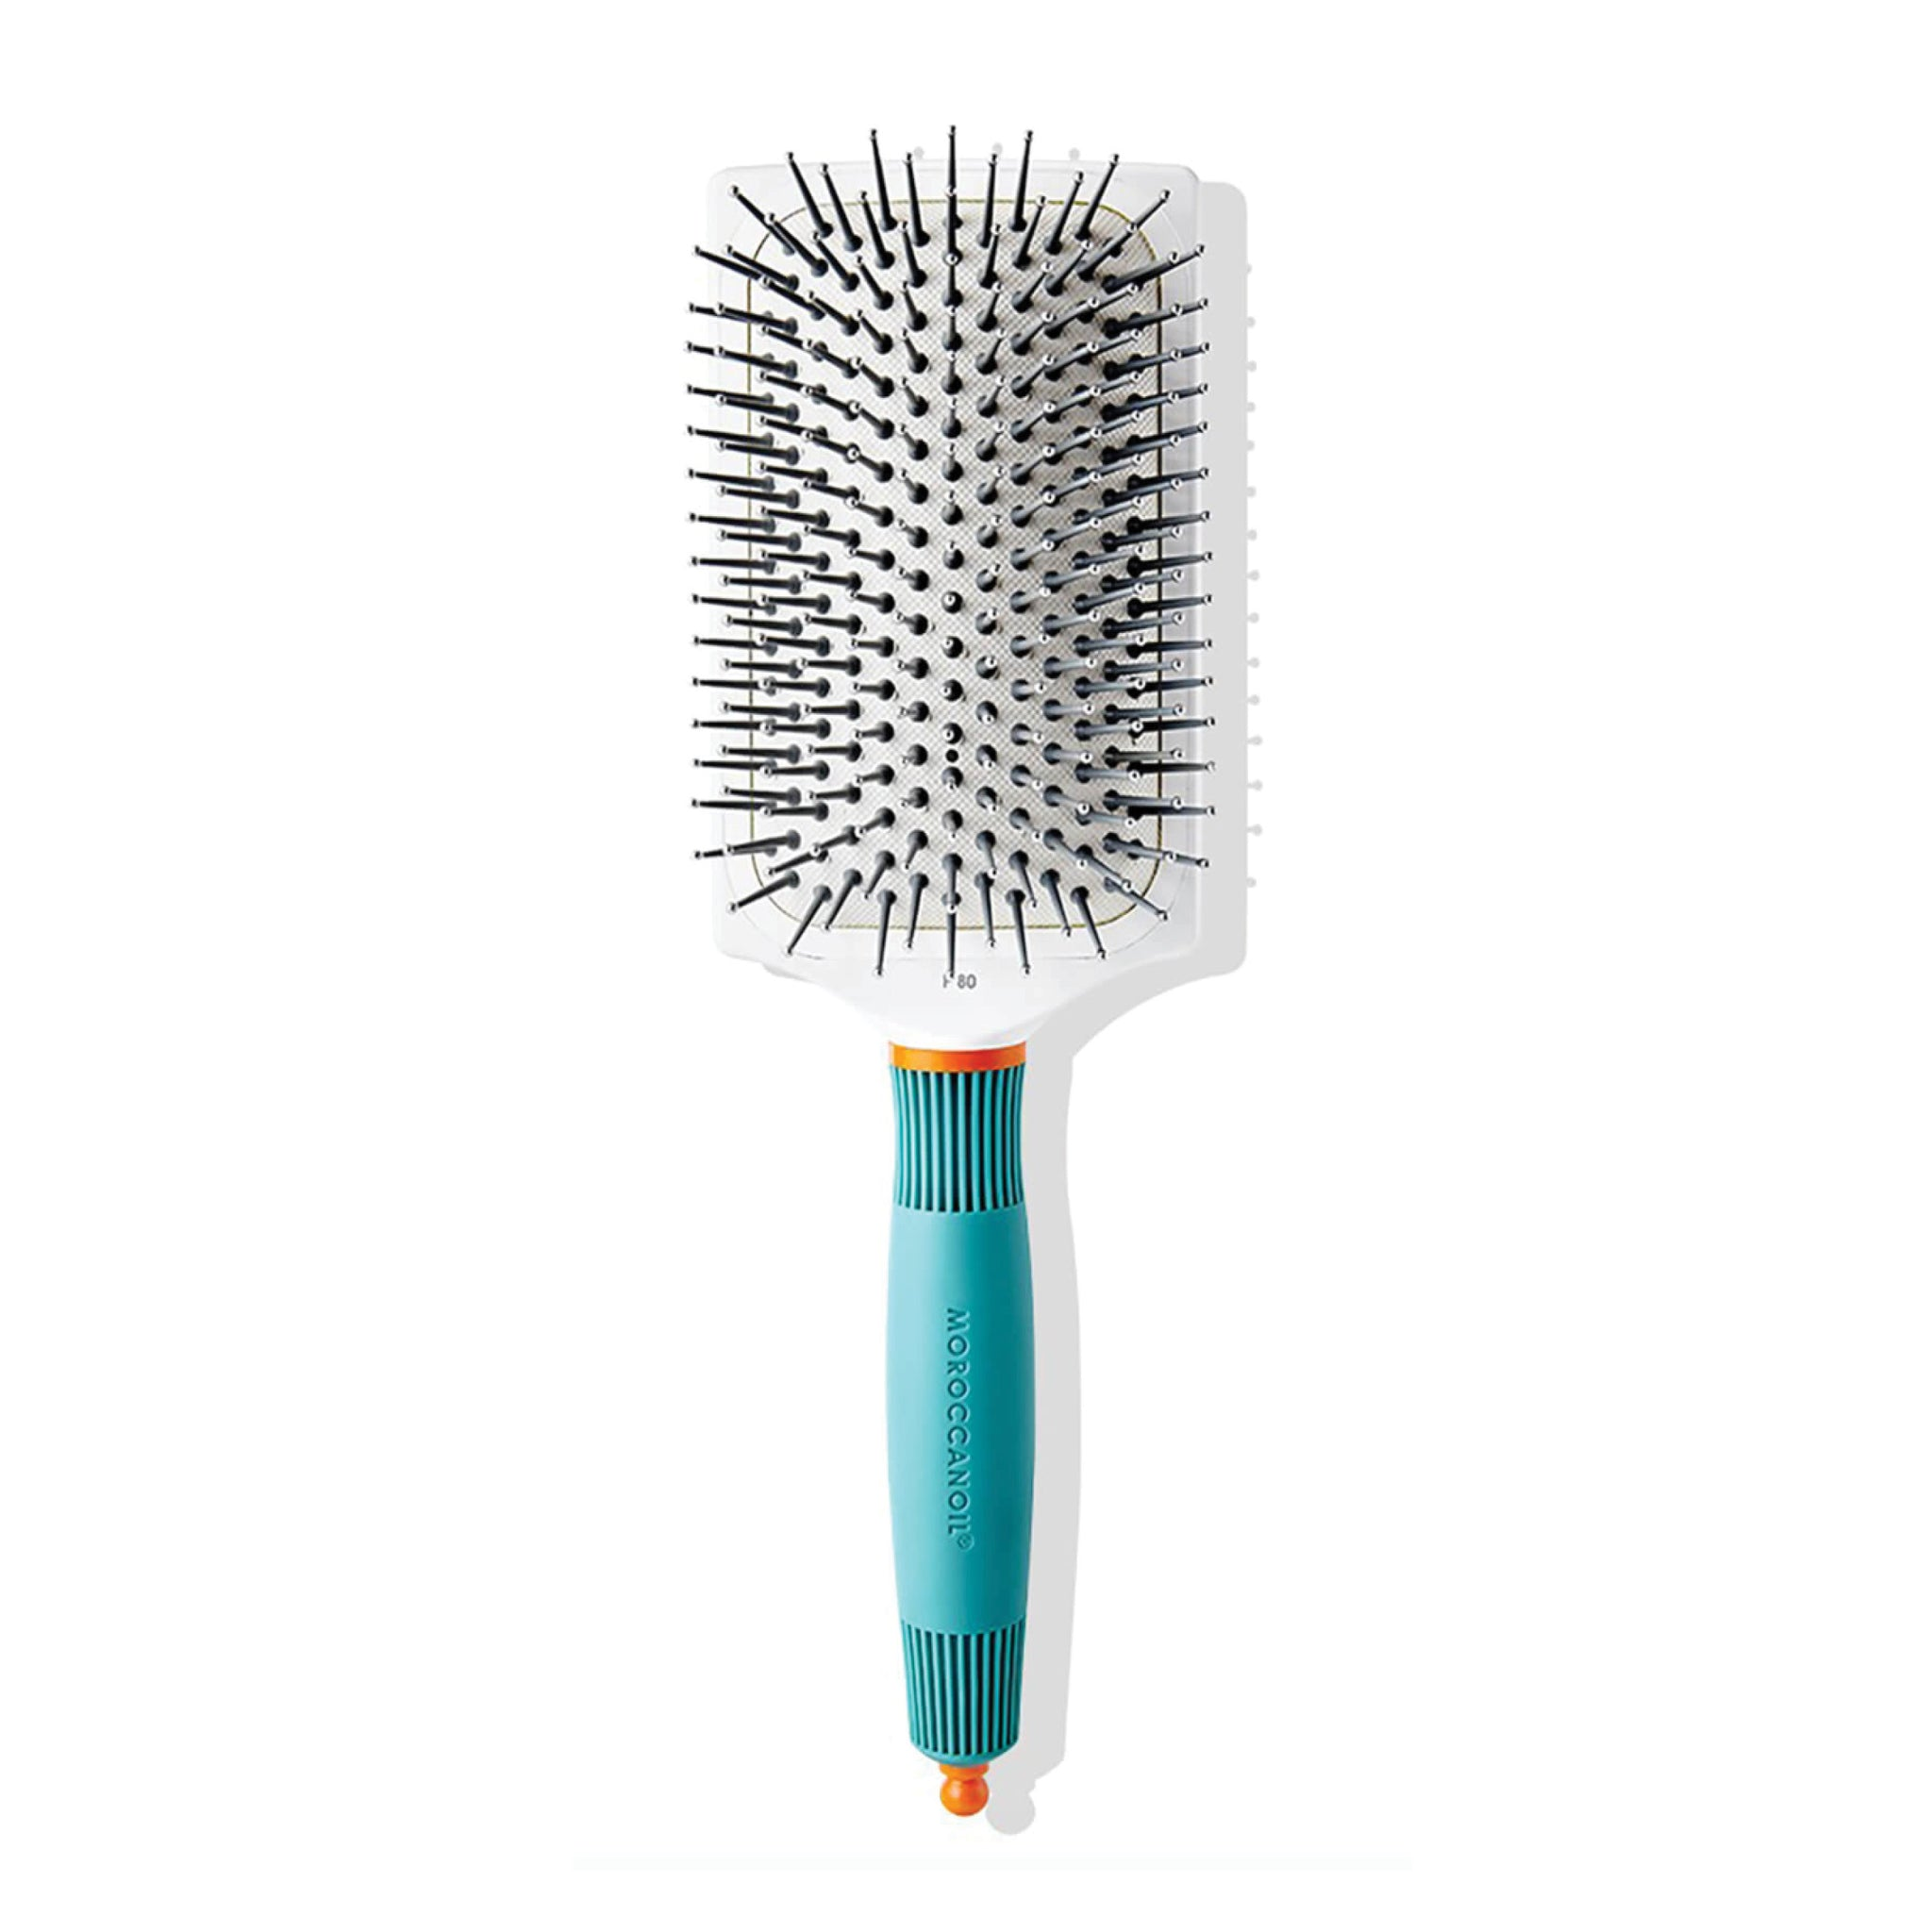 Moroccanoil Brush Paddle